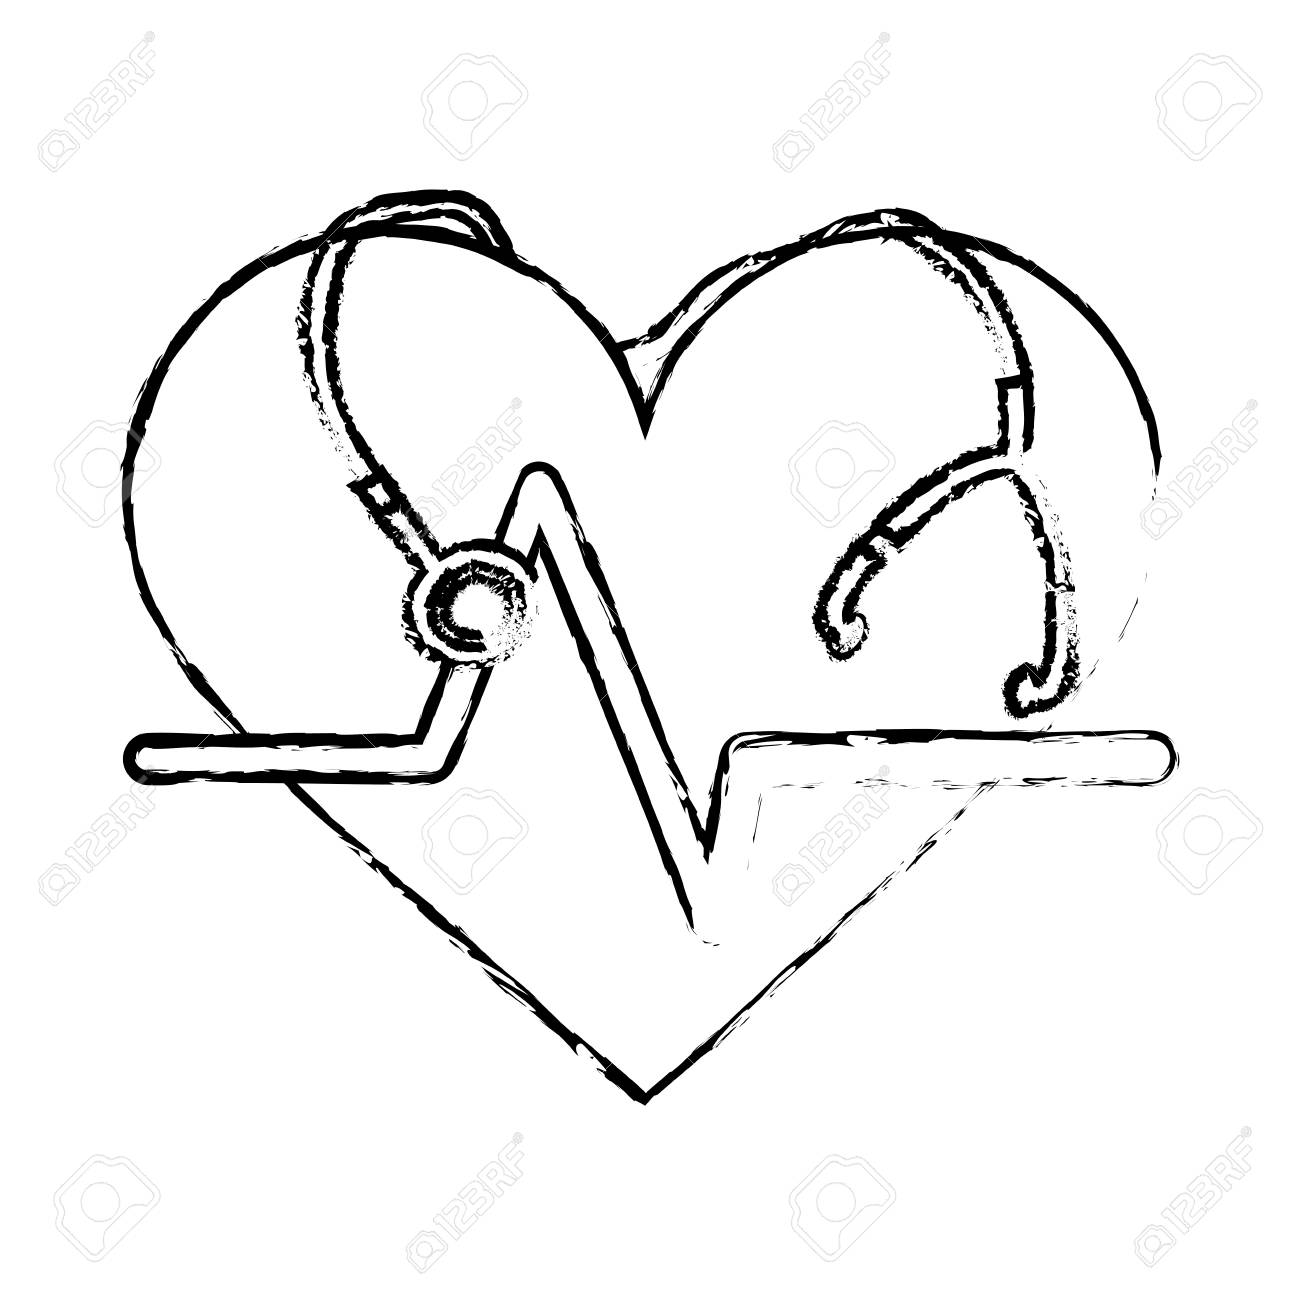 1300x1300 Cardio Heart With Stethoscope Icon Over White Background. Vector